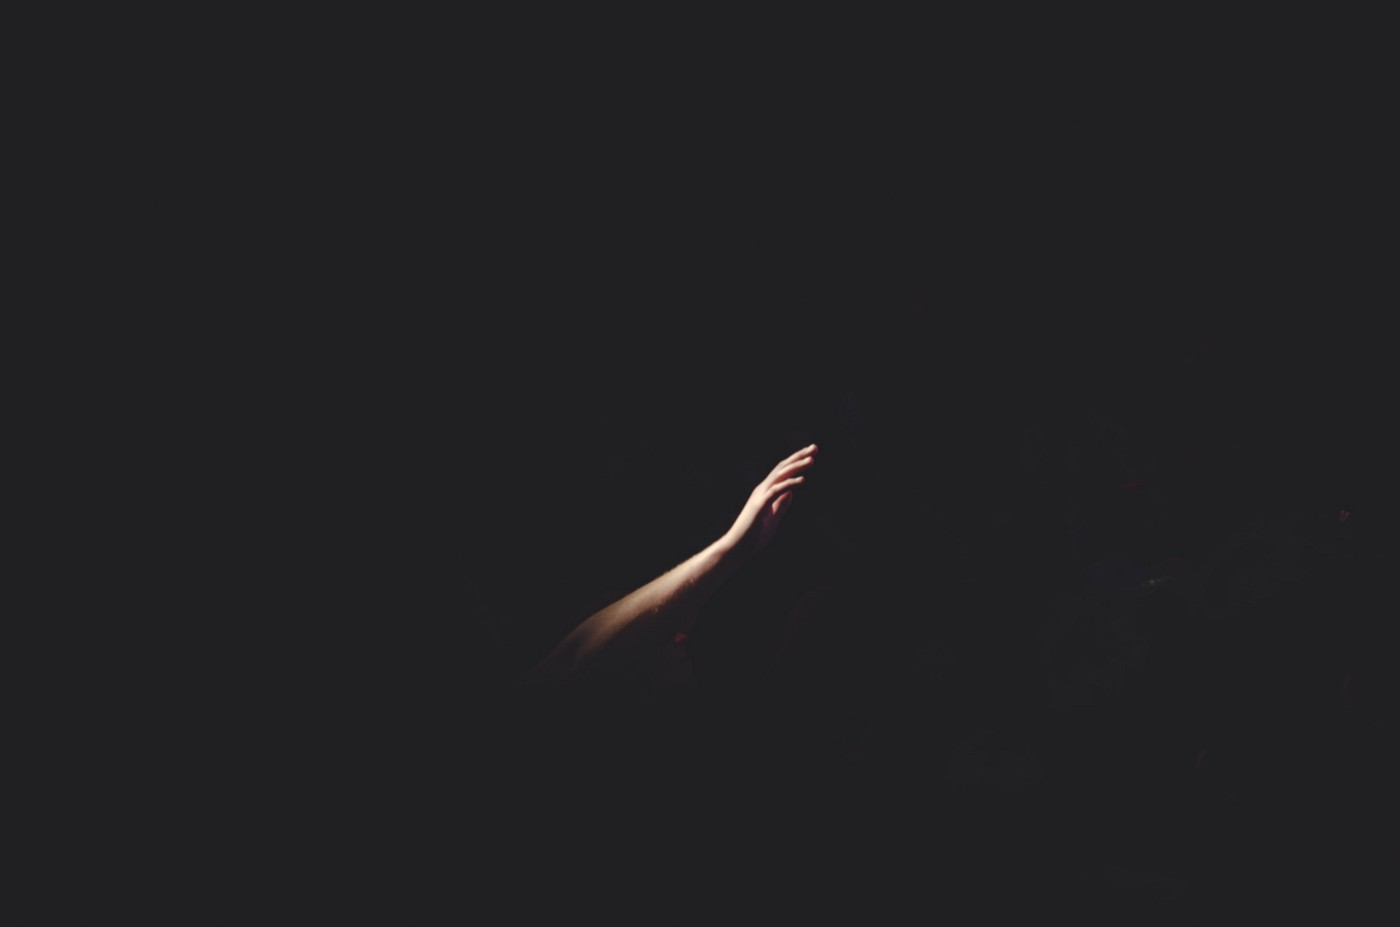 A person reaches out in the dark. Looking for success.